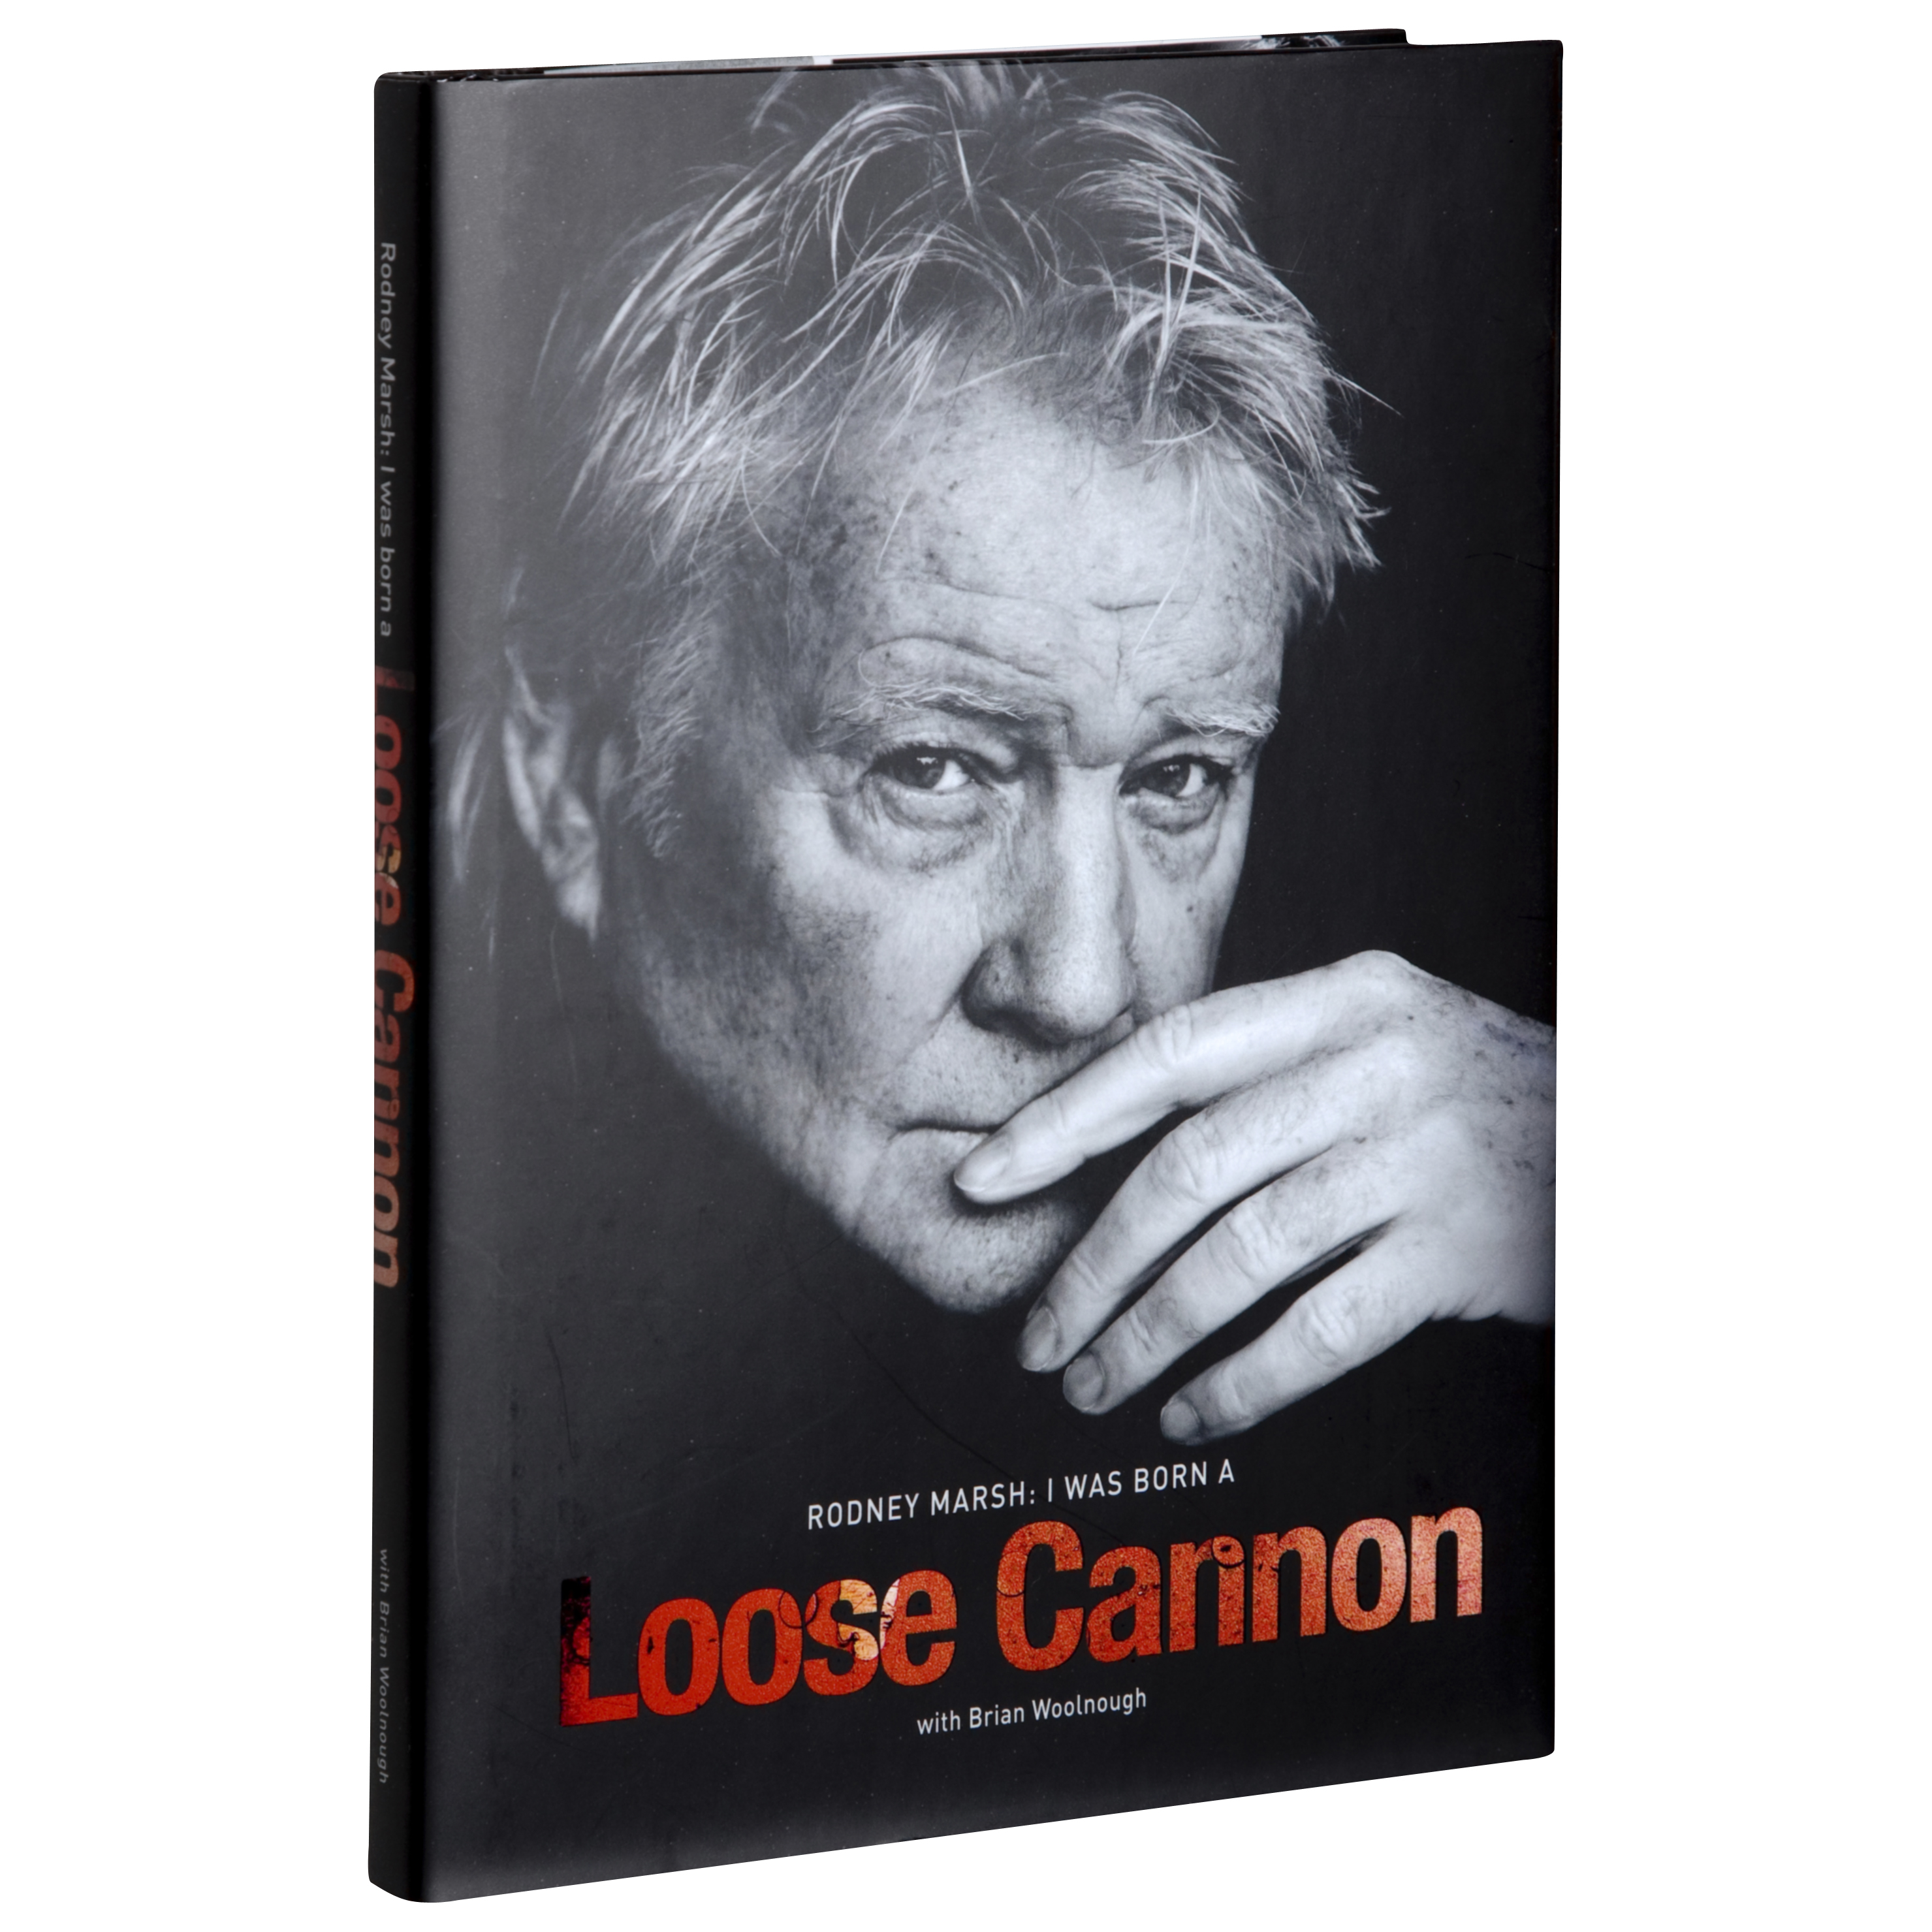 Manchester City Rodney Marsh - I Was Born a Loose Cannon Book (Hardback)